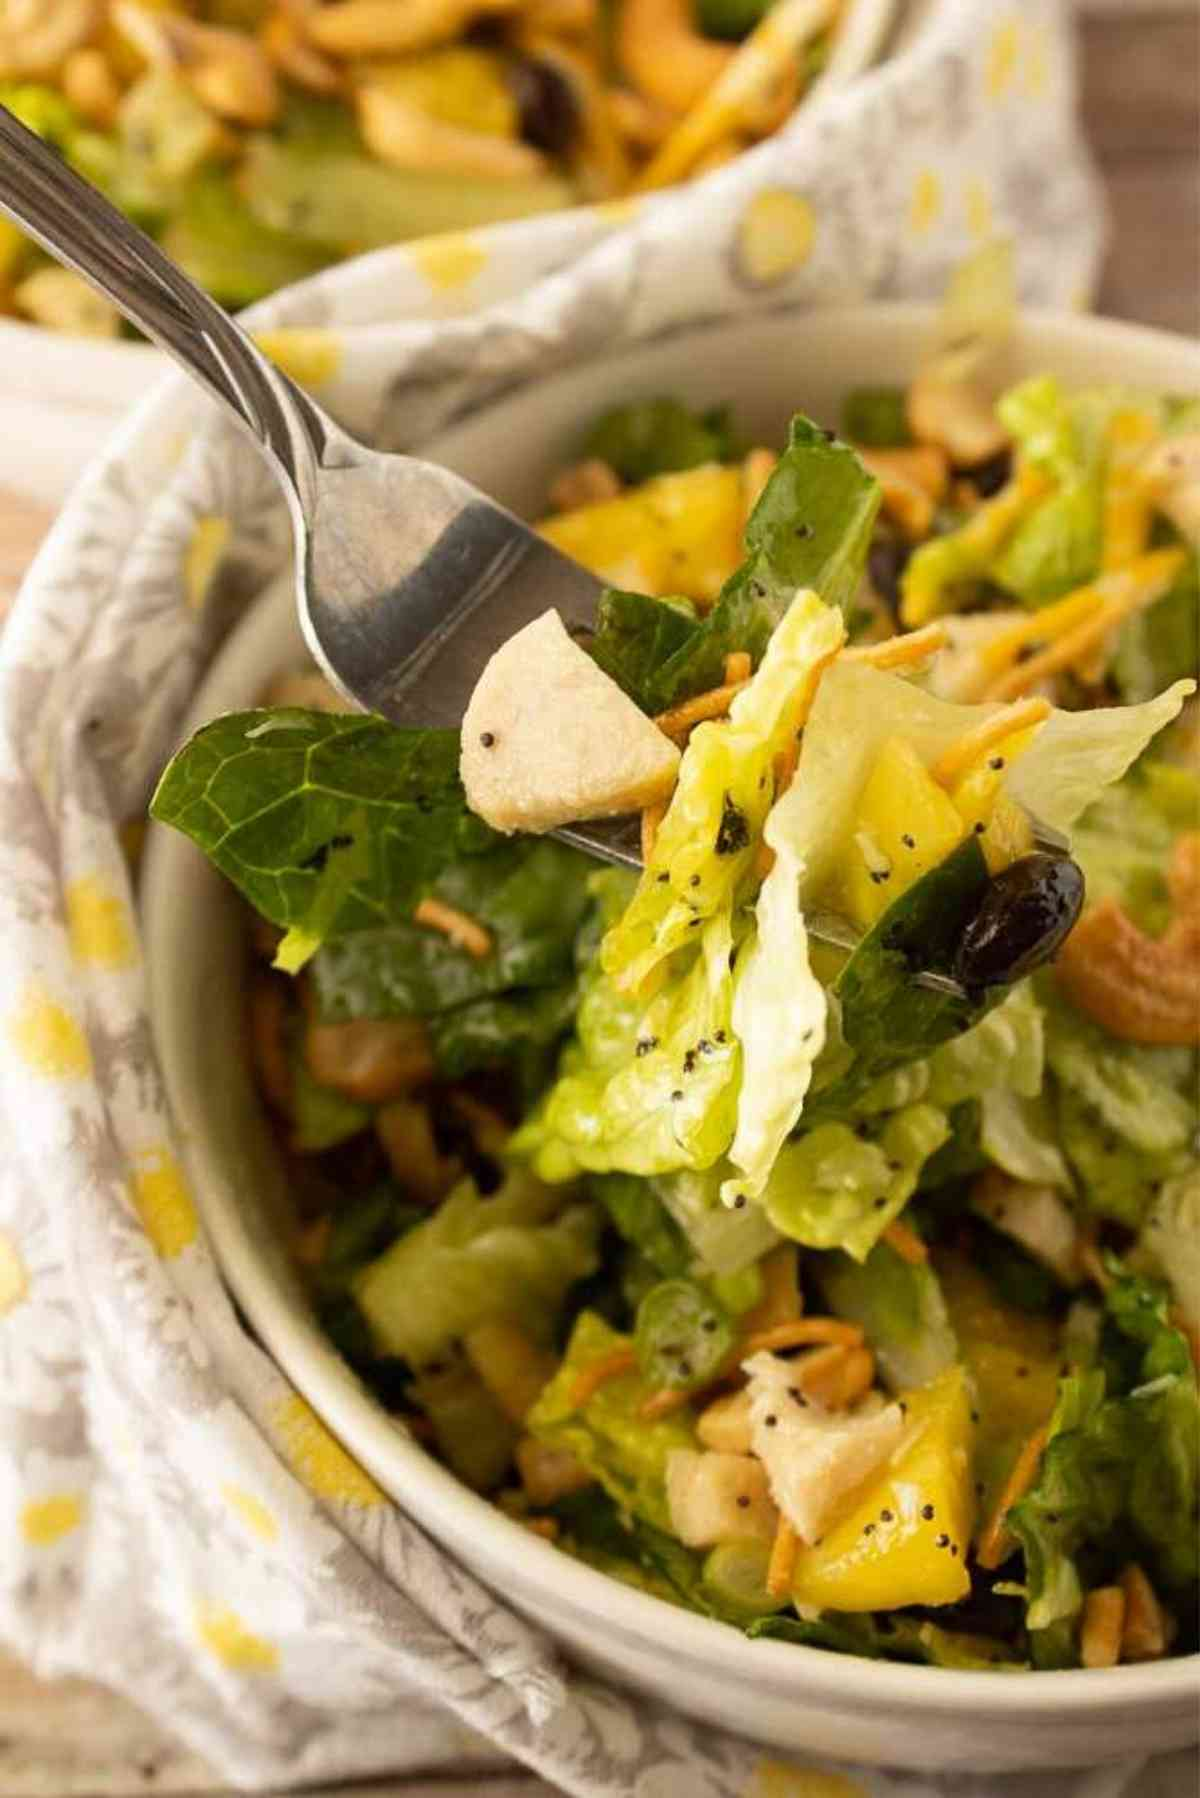 A fork lifting a bite of lettuce, chicken, black beans and pineapple coated with poppy seed dressing.